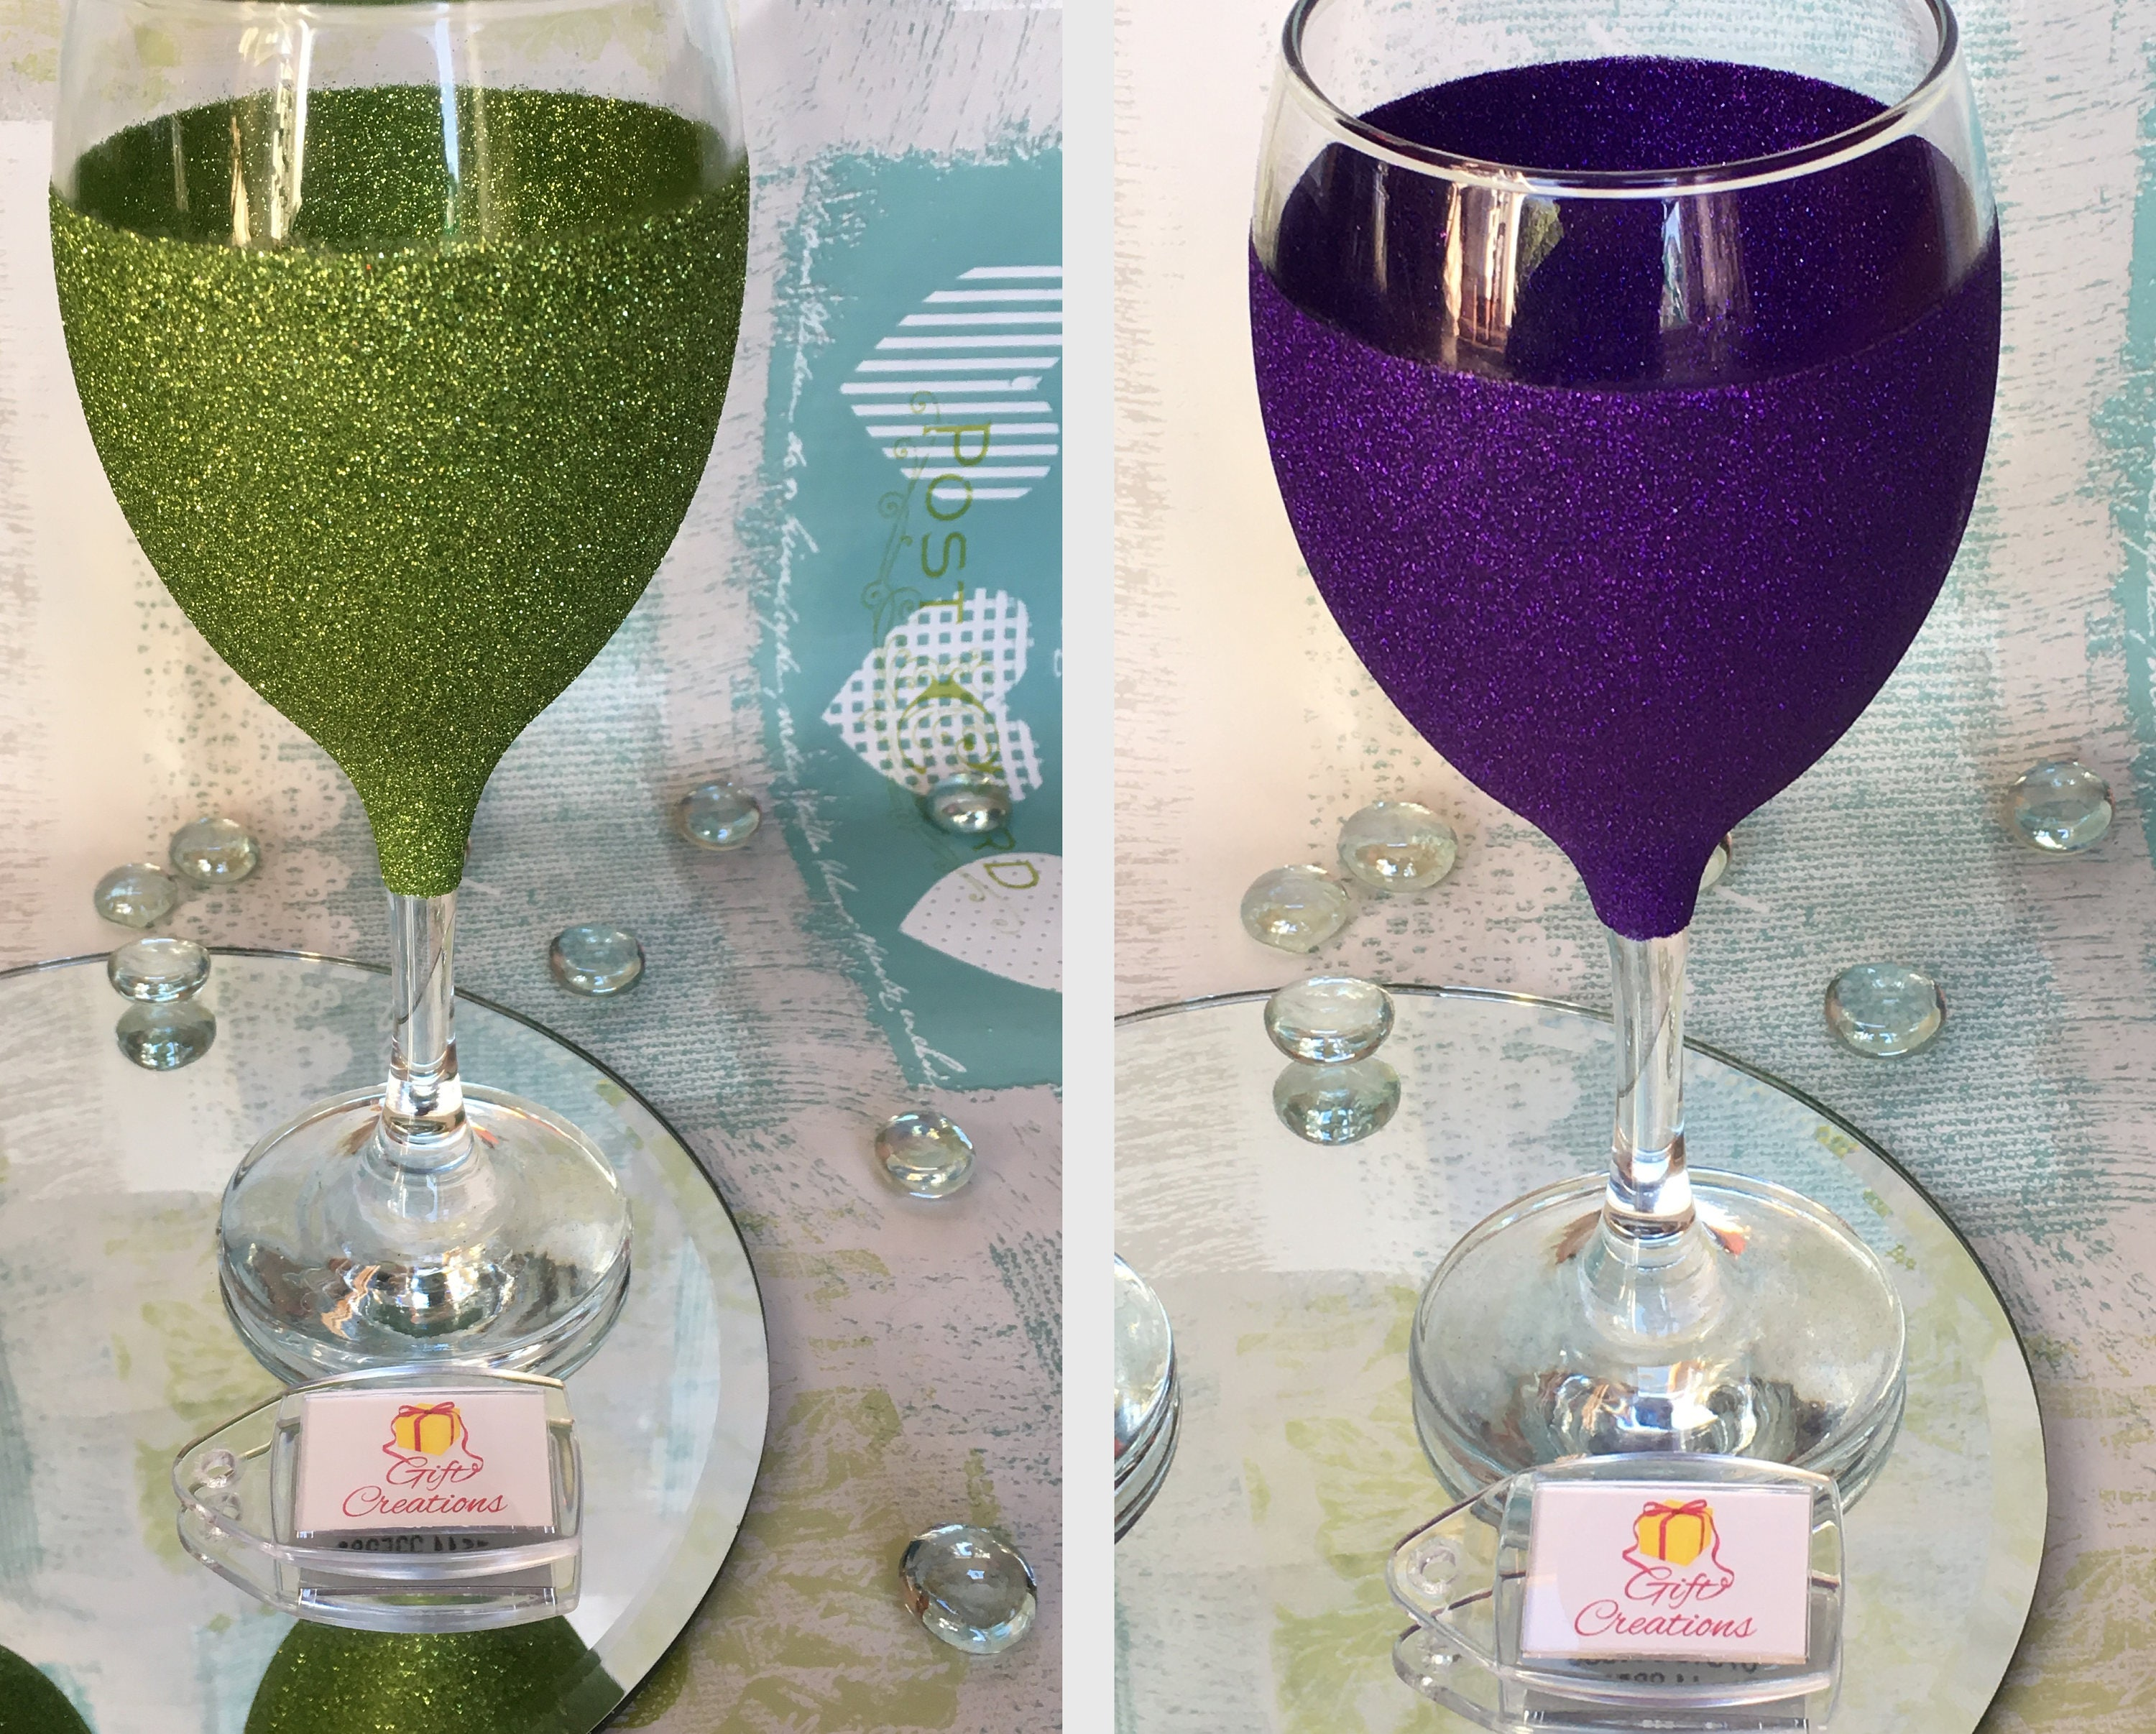 sold individually Green and dark purple stemless wine glasses